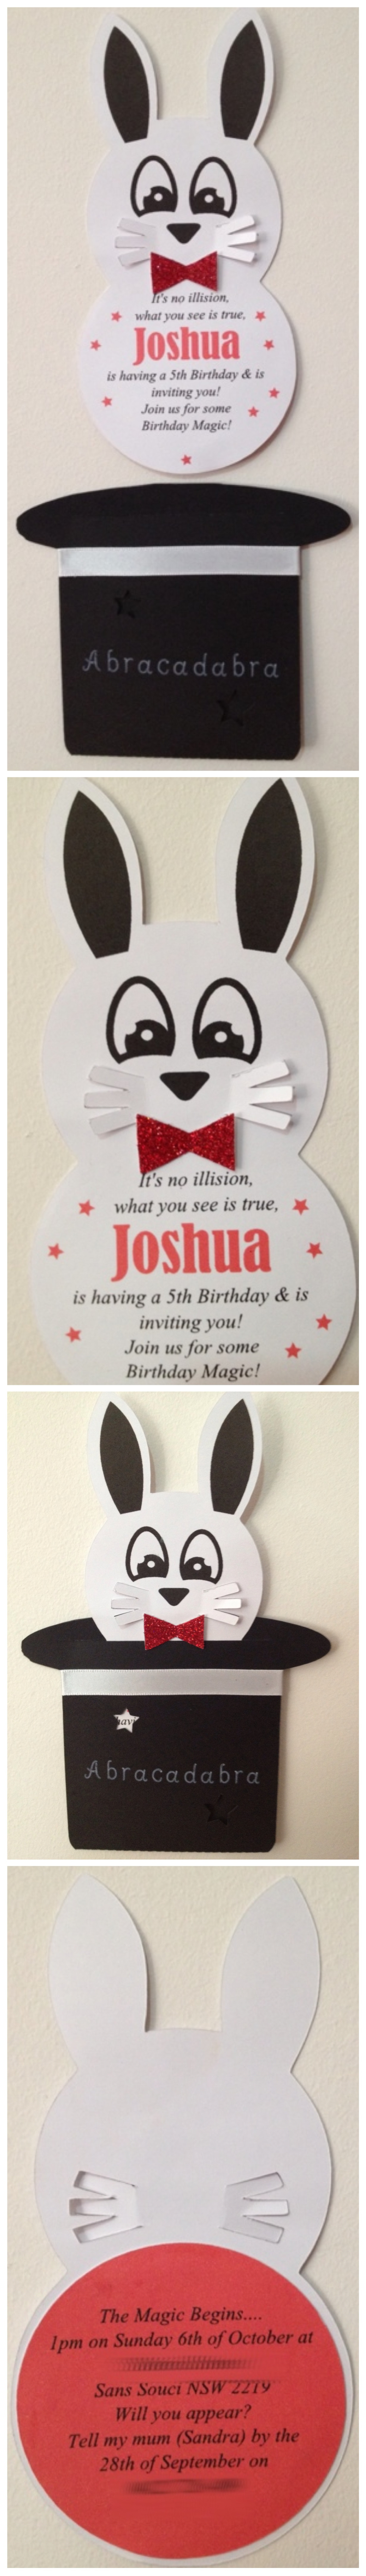 Magicmagician themed party invitation with a rabbit popping out of